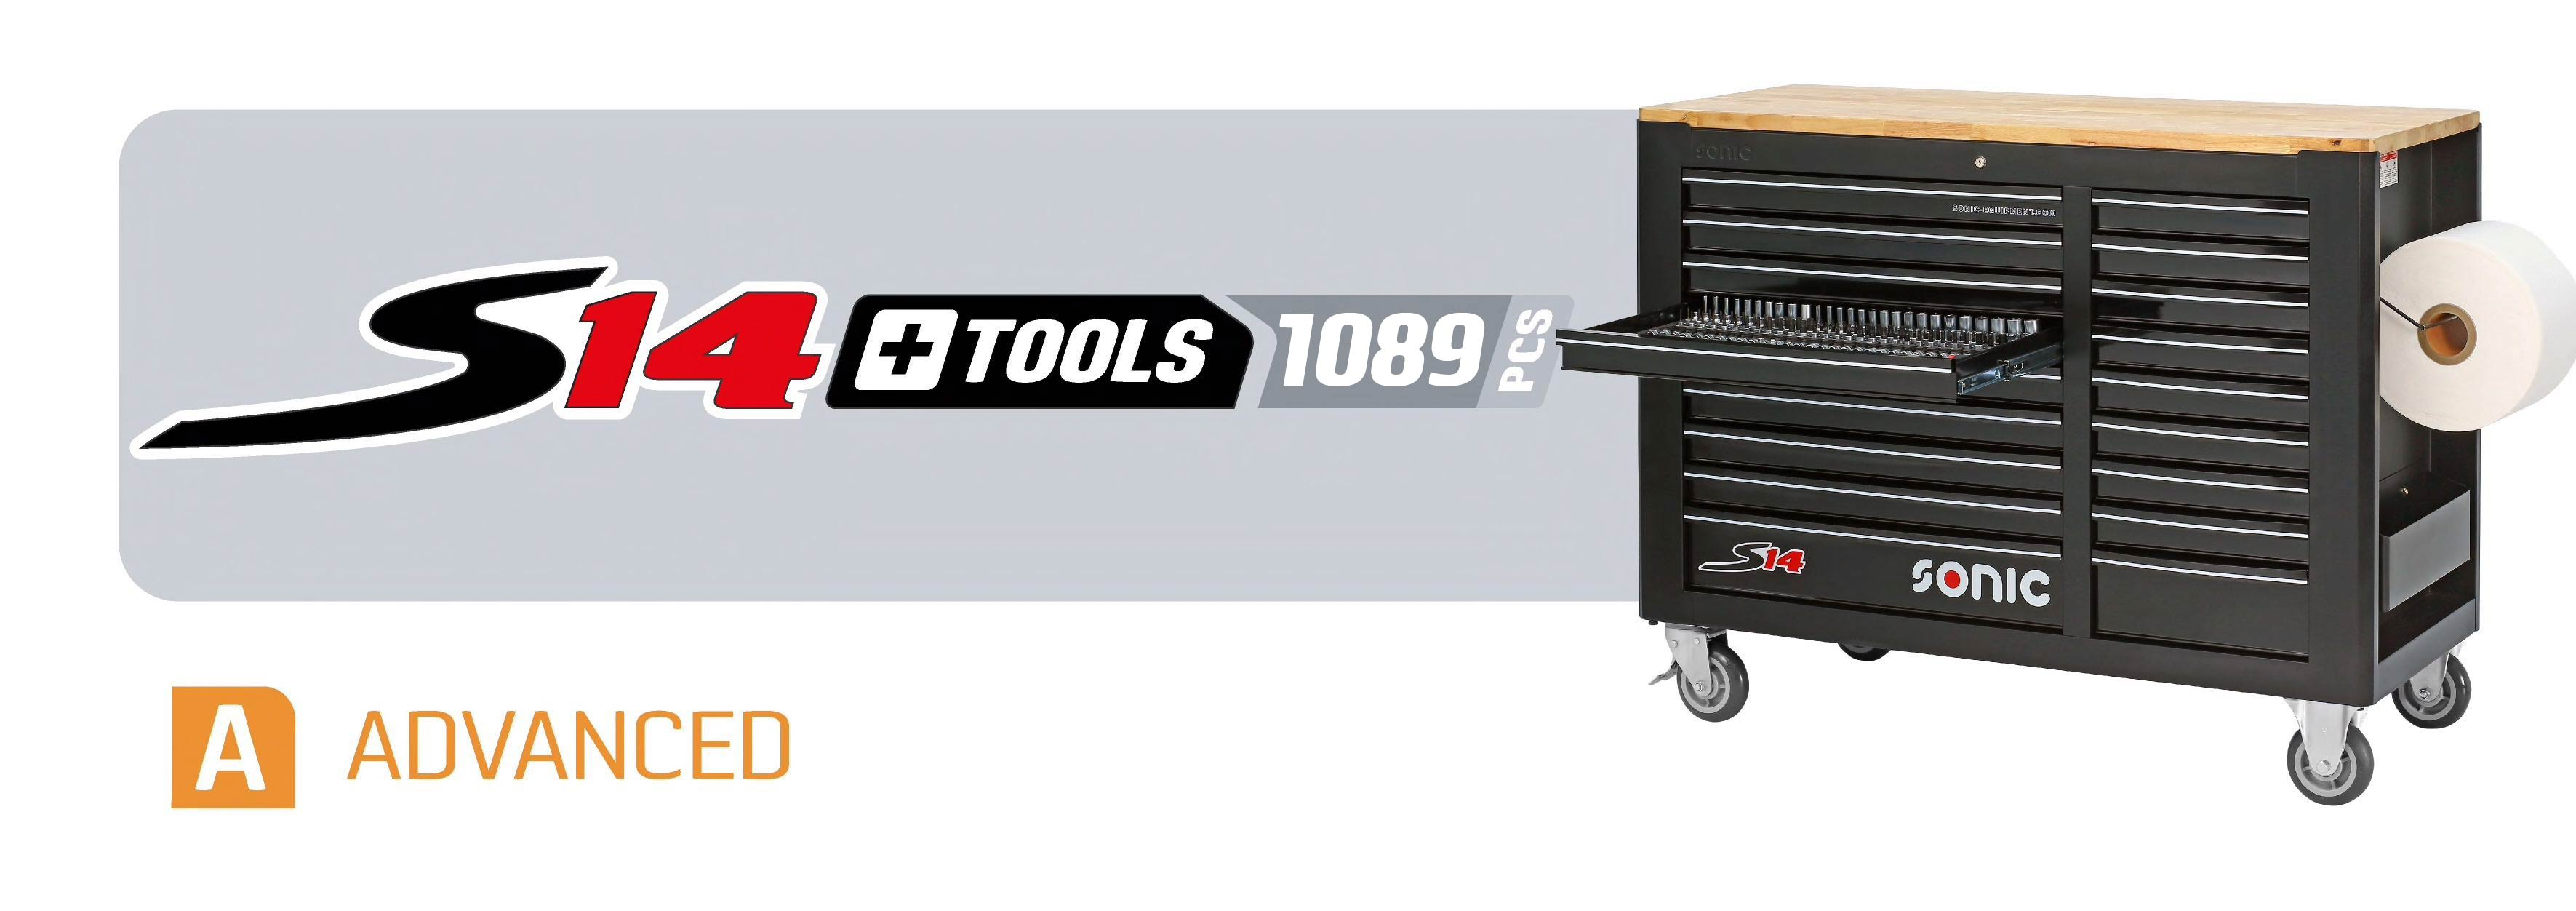 s14 toolbox with tools 1089 pieces